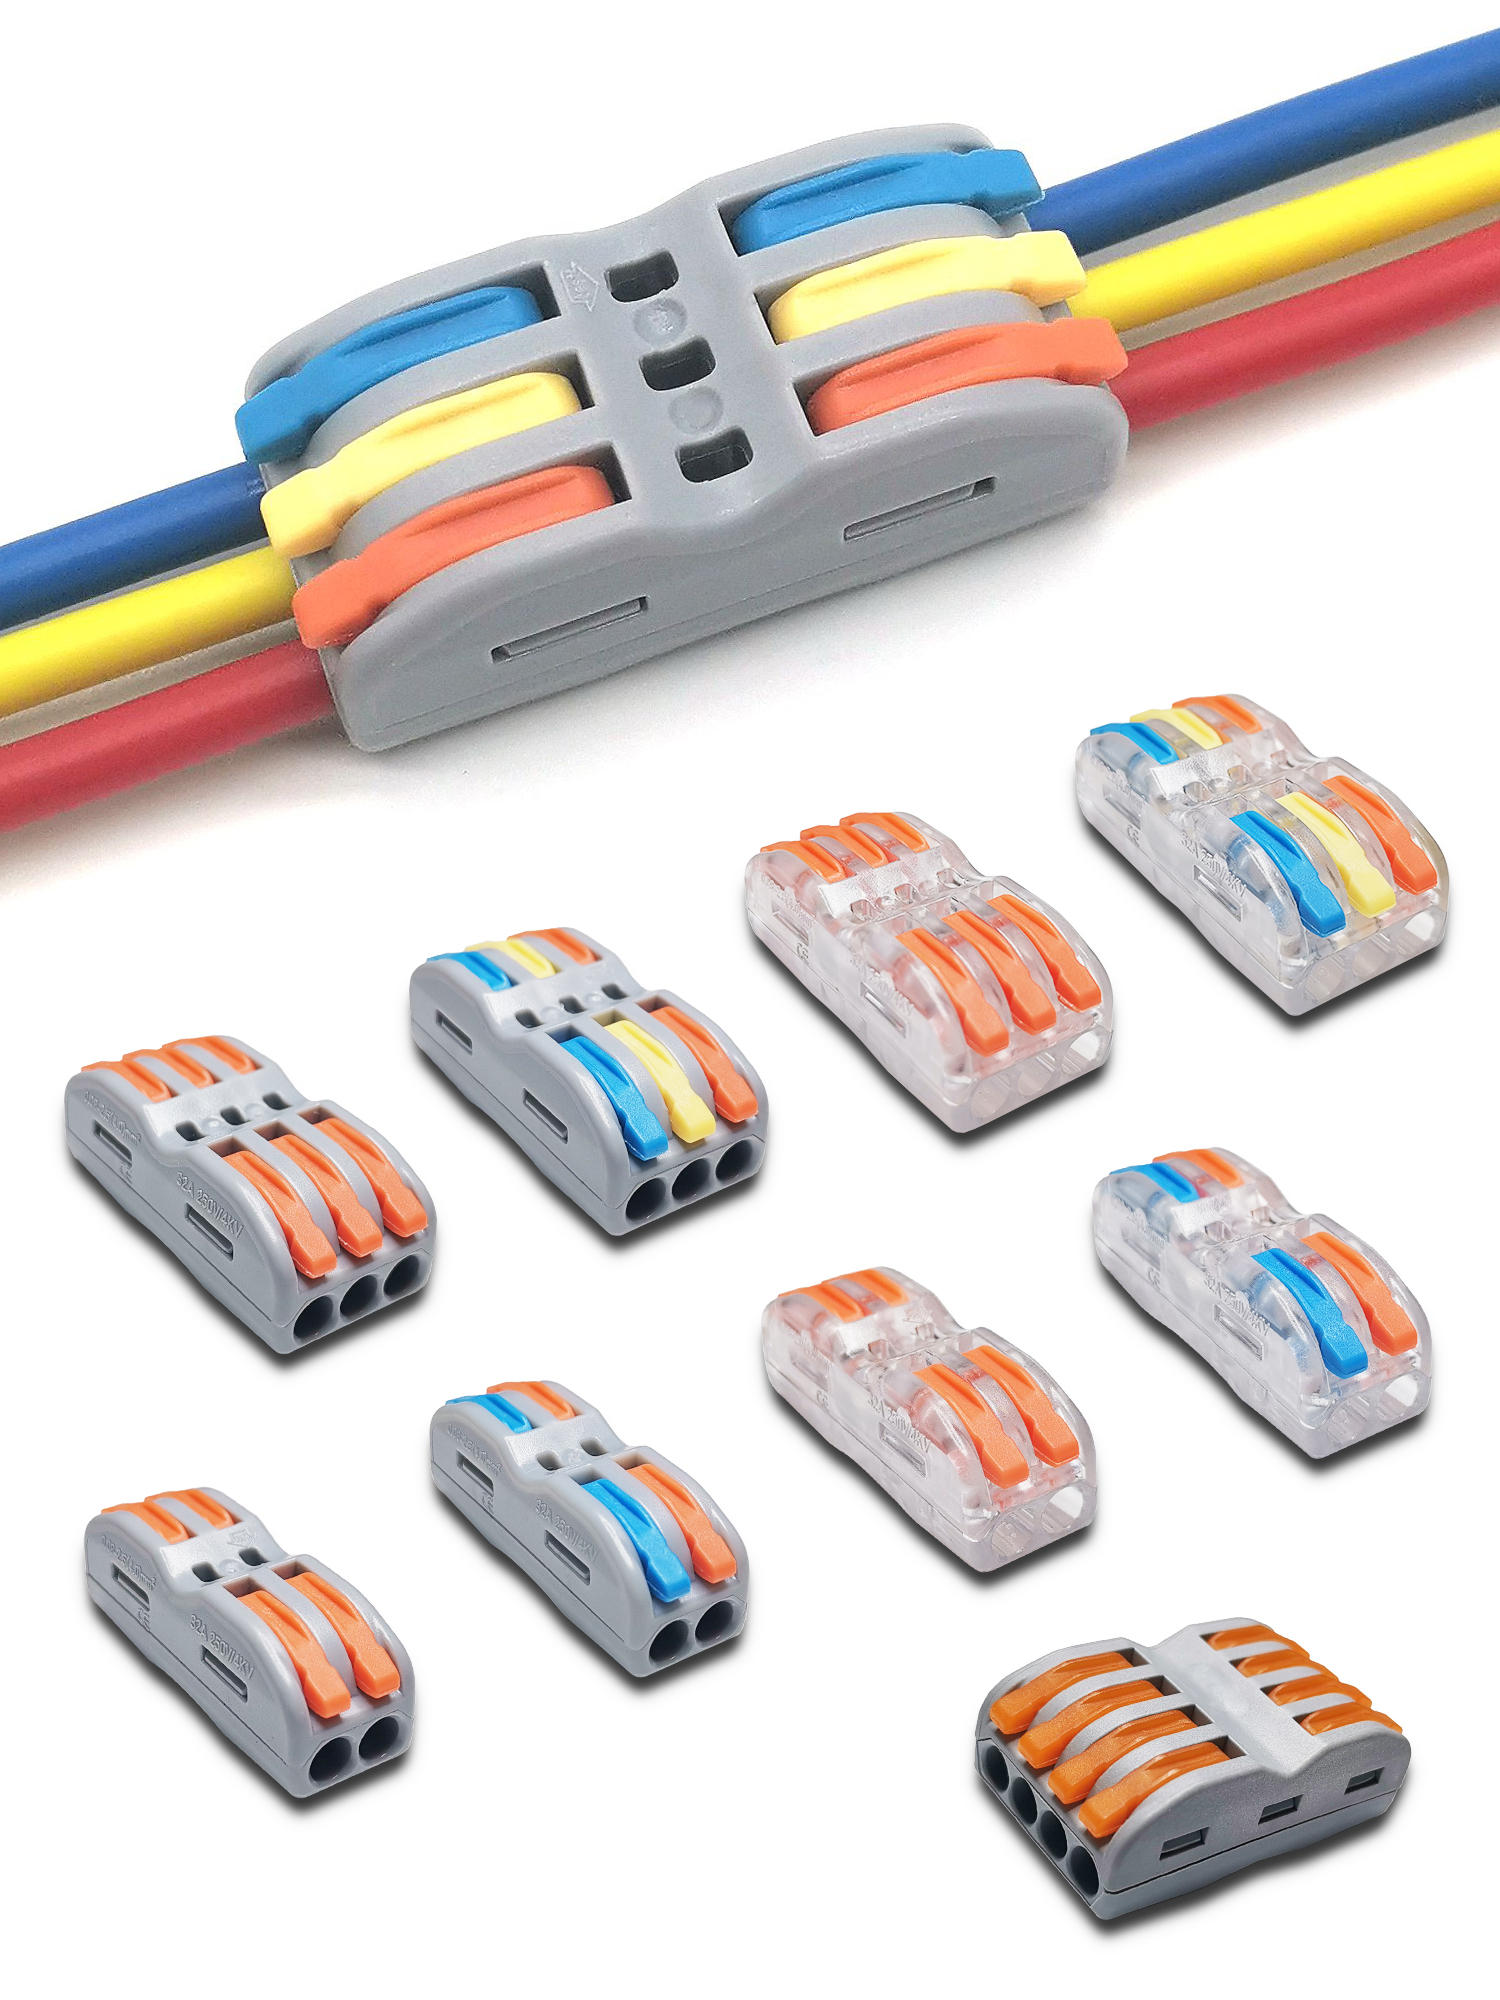 Cable-Connectors Spring Push-In-Terminal-Block Compact Fast-Wire Mini Splicing Universal